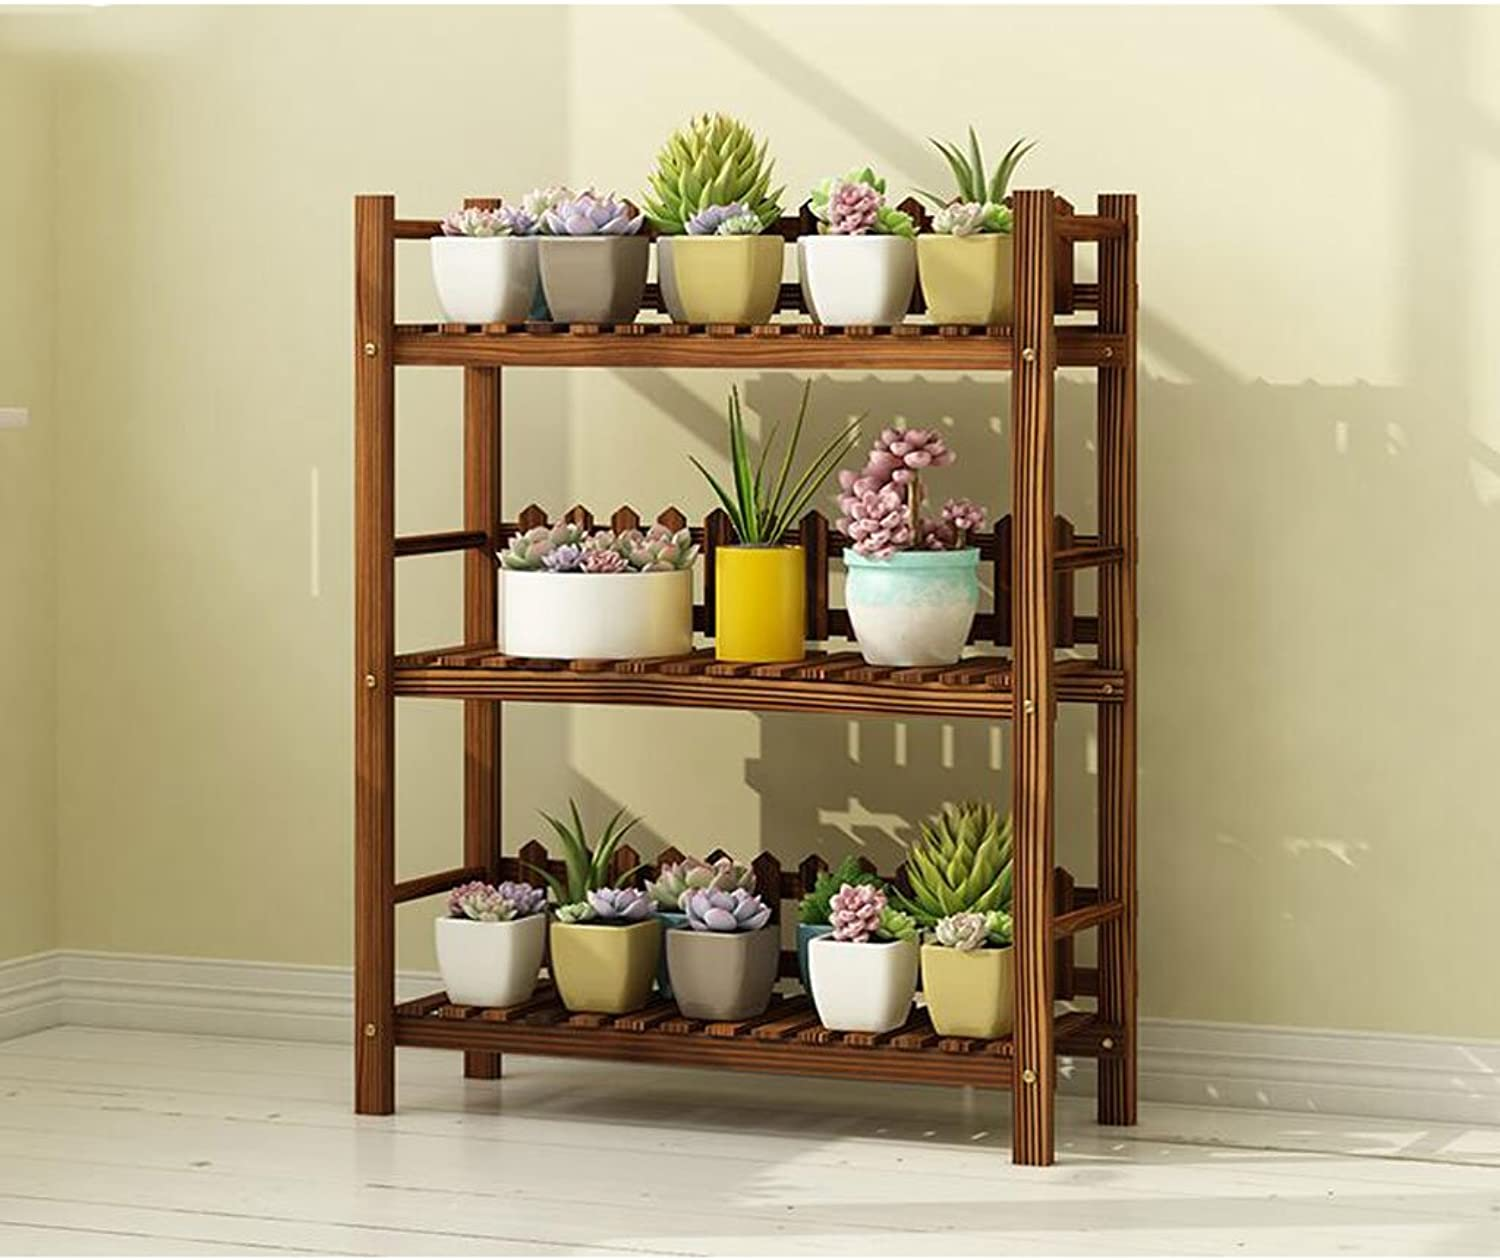 Flower stand Solid Wood flower stand Plant Stand Indoor Balcony flower stand Multi-Layer Floor Shelf Three-Dimensional flower stand (Size   M)